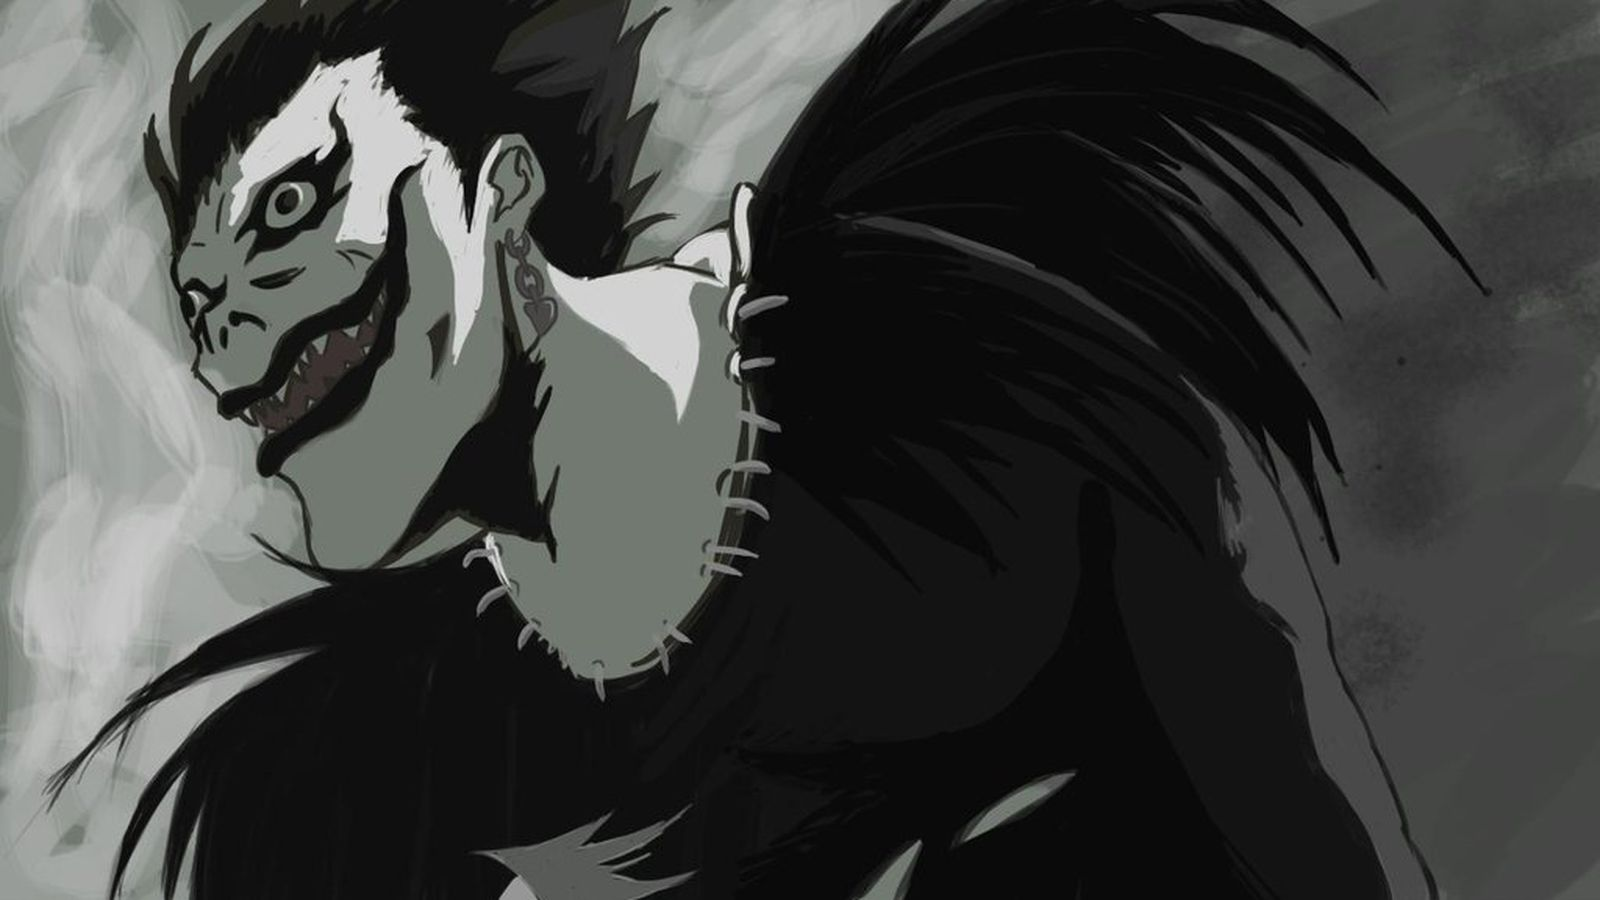 Willem Dafoe will voice Ryuk the Shinigami in live-action ...